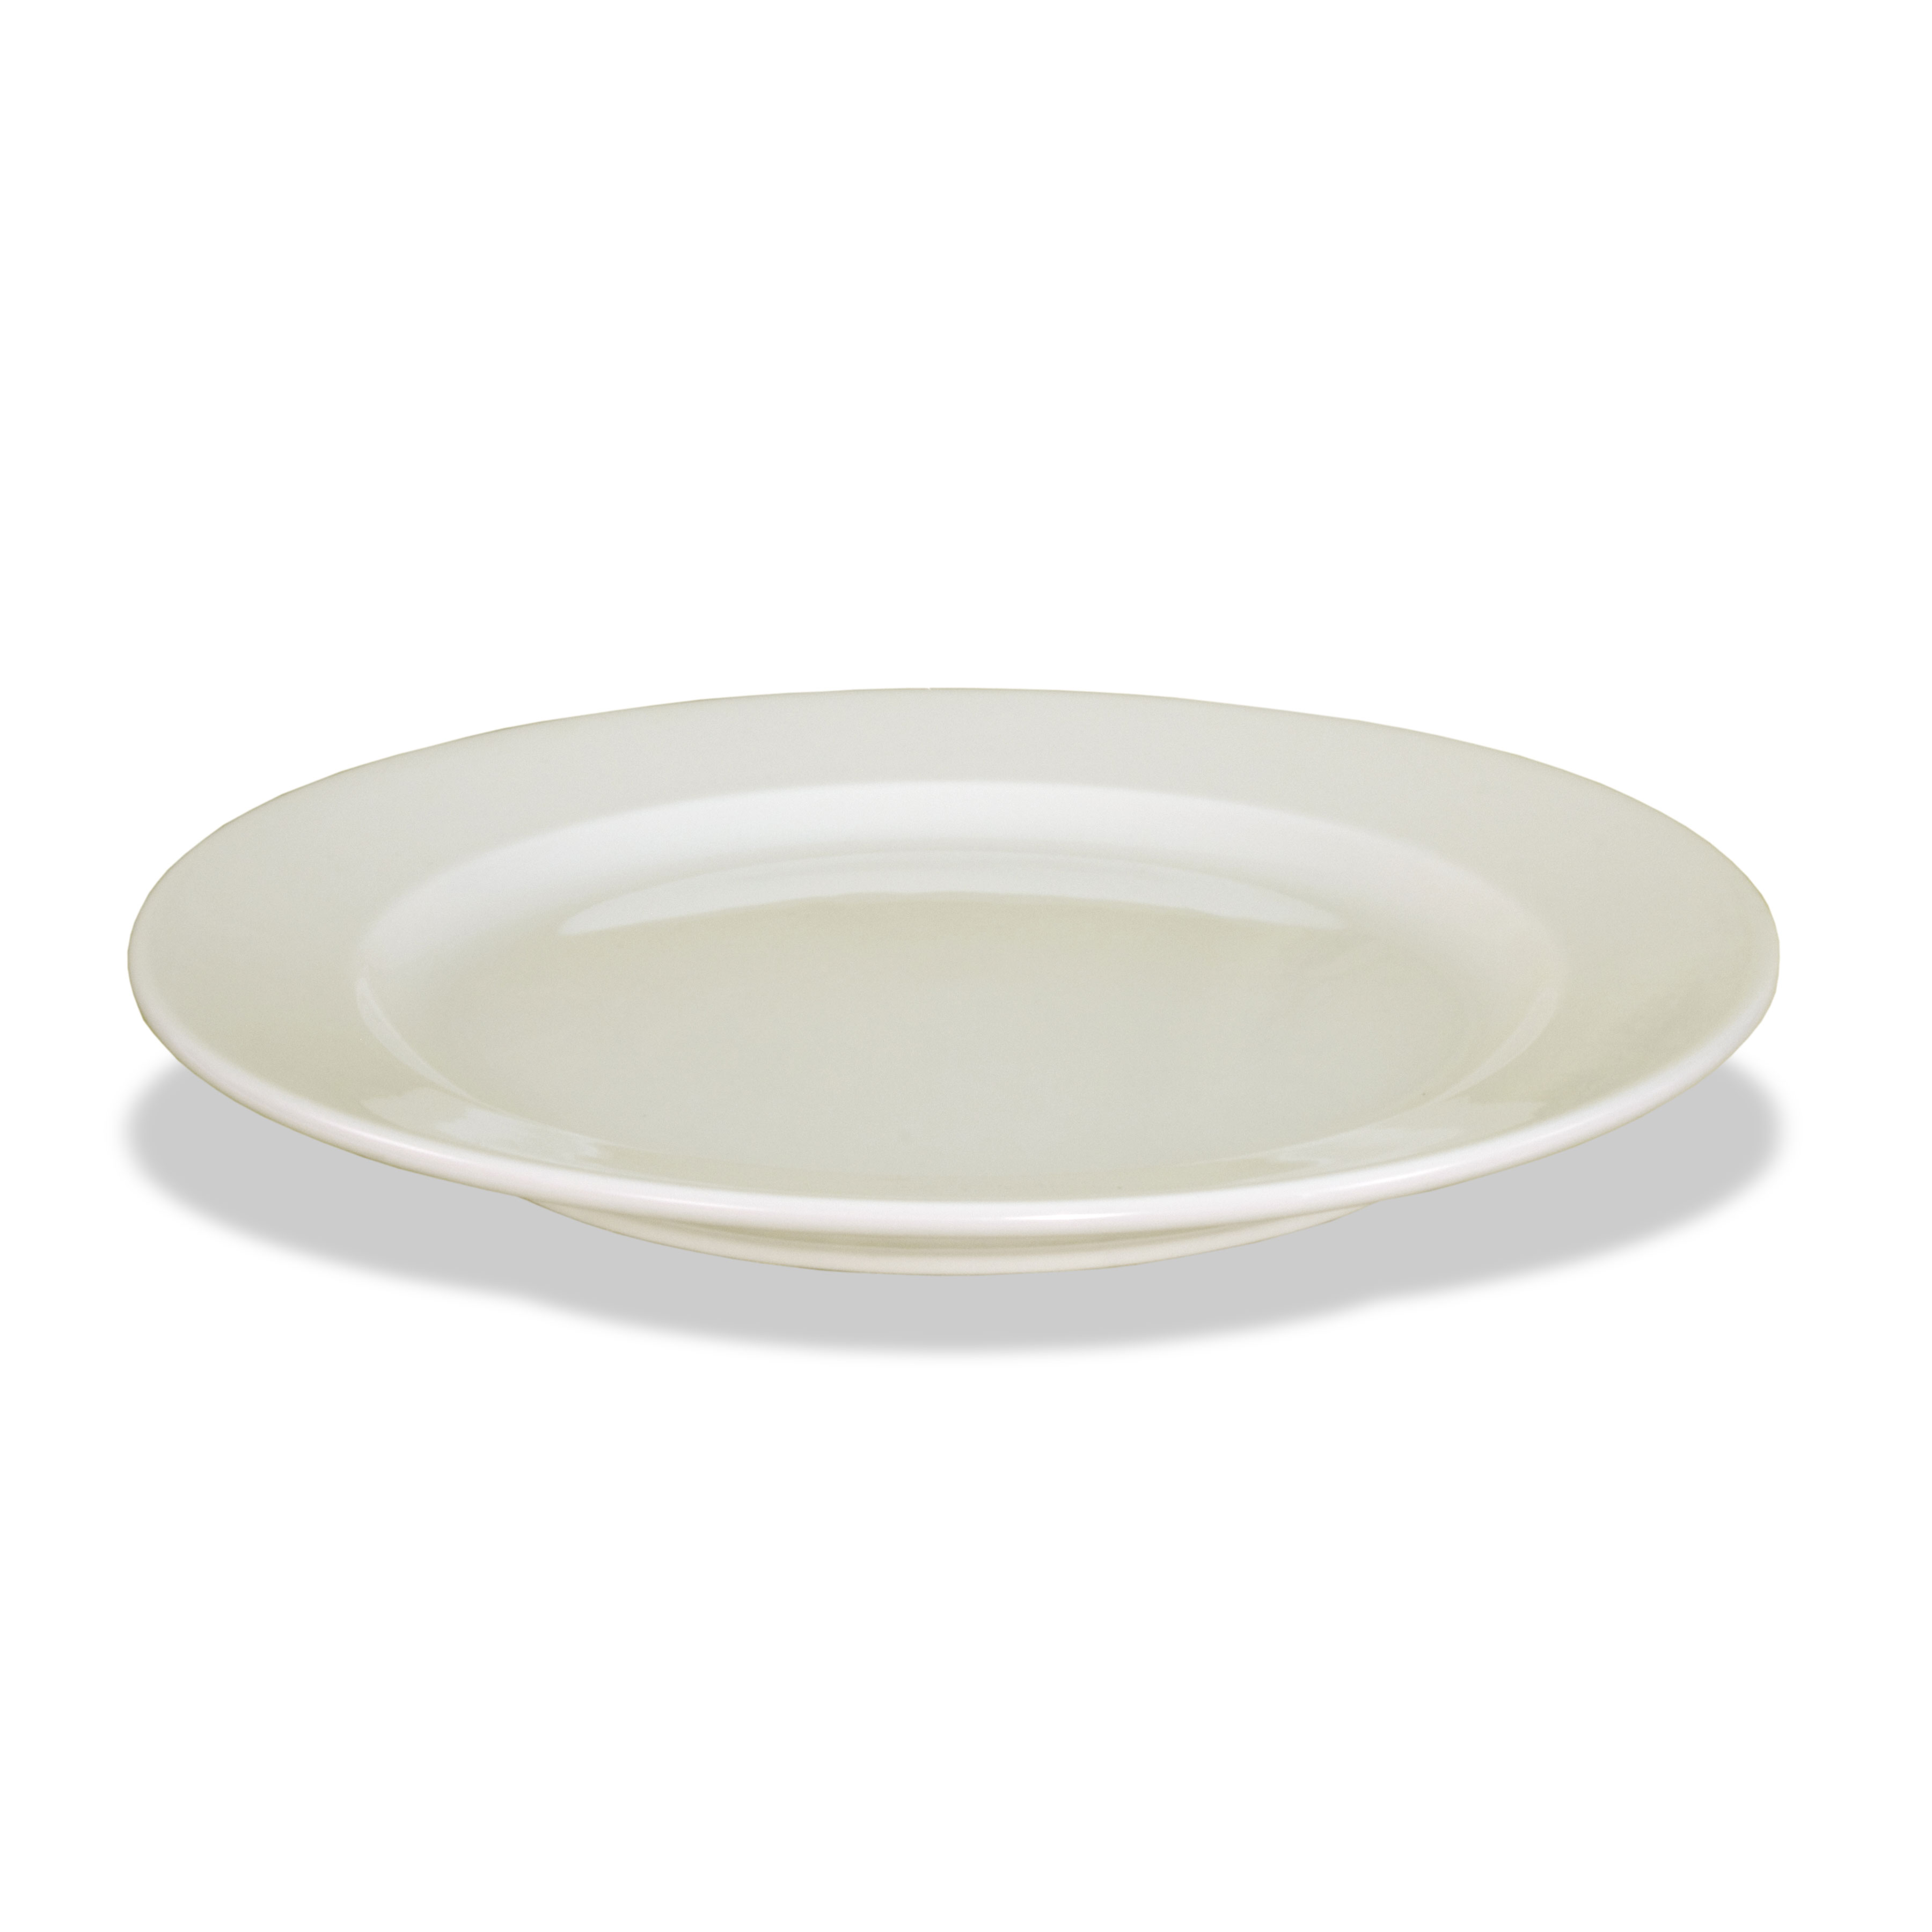 Crestware BEL43 plate, china